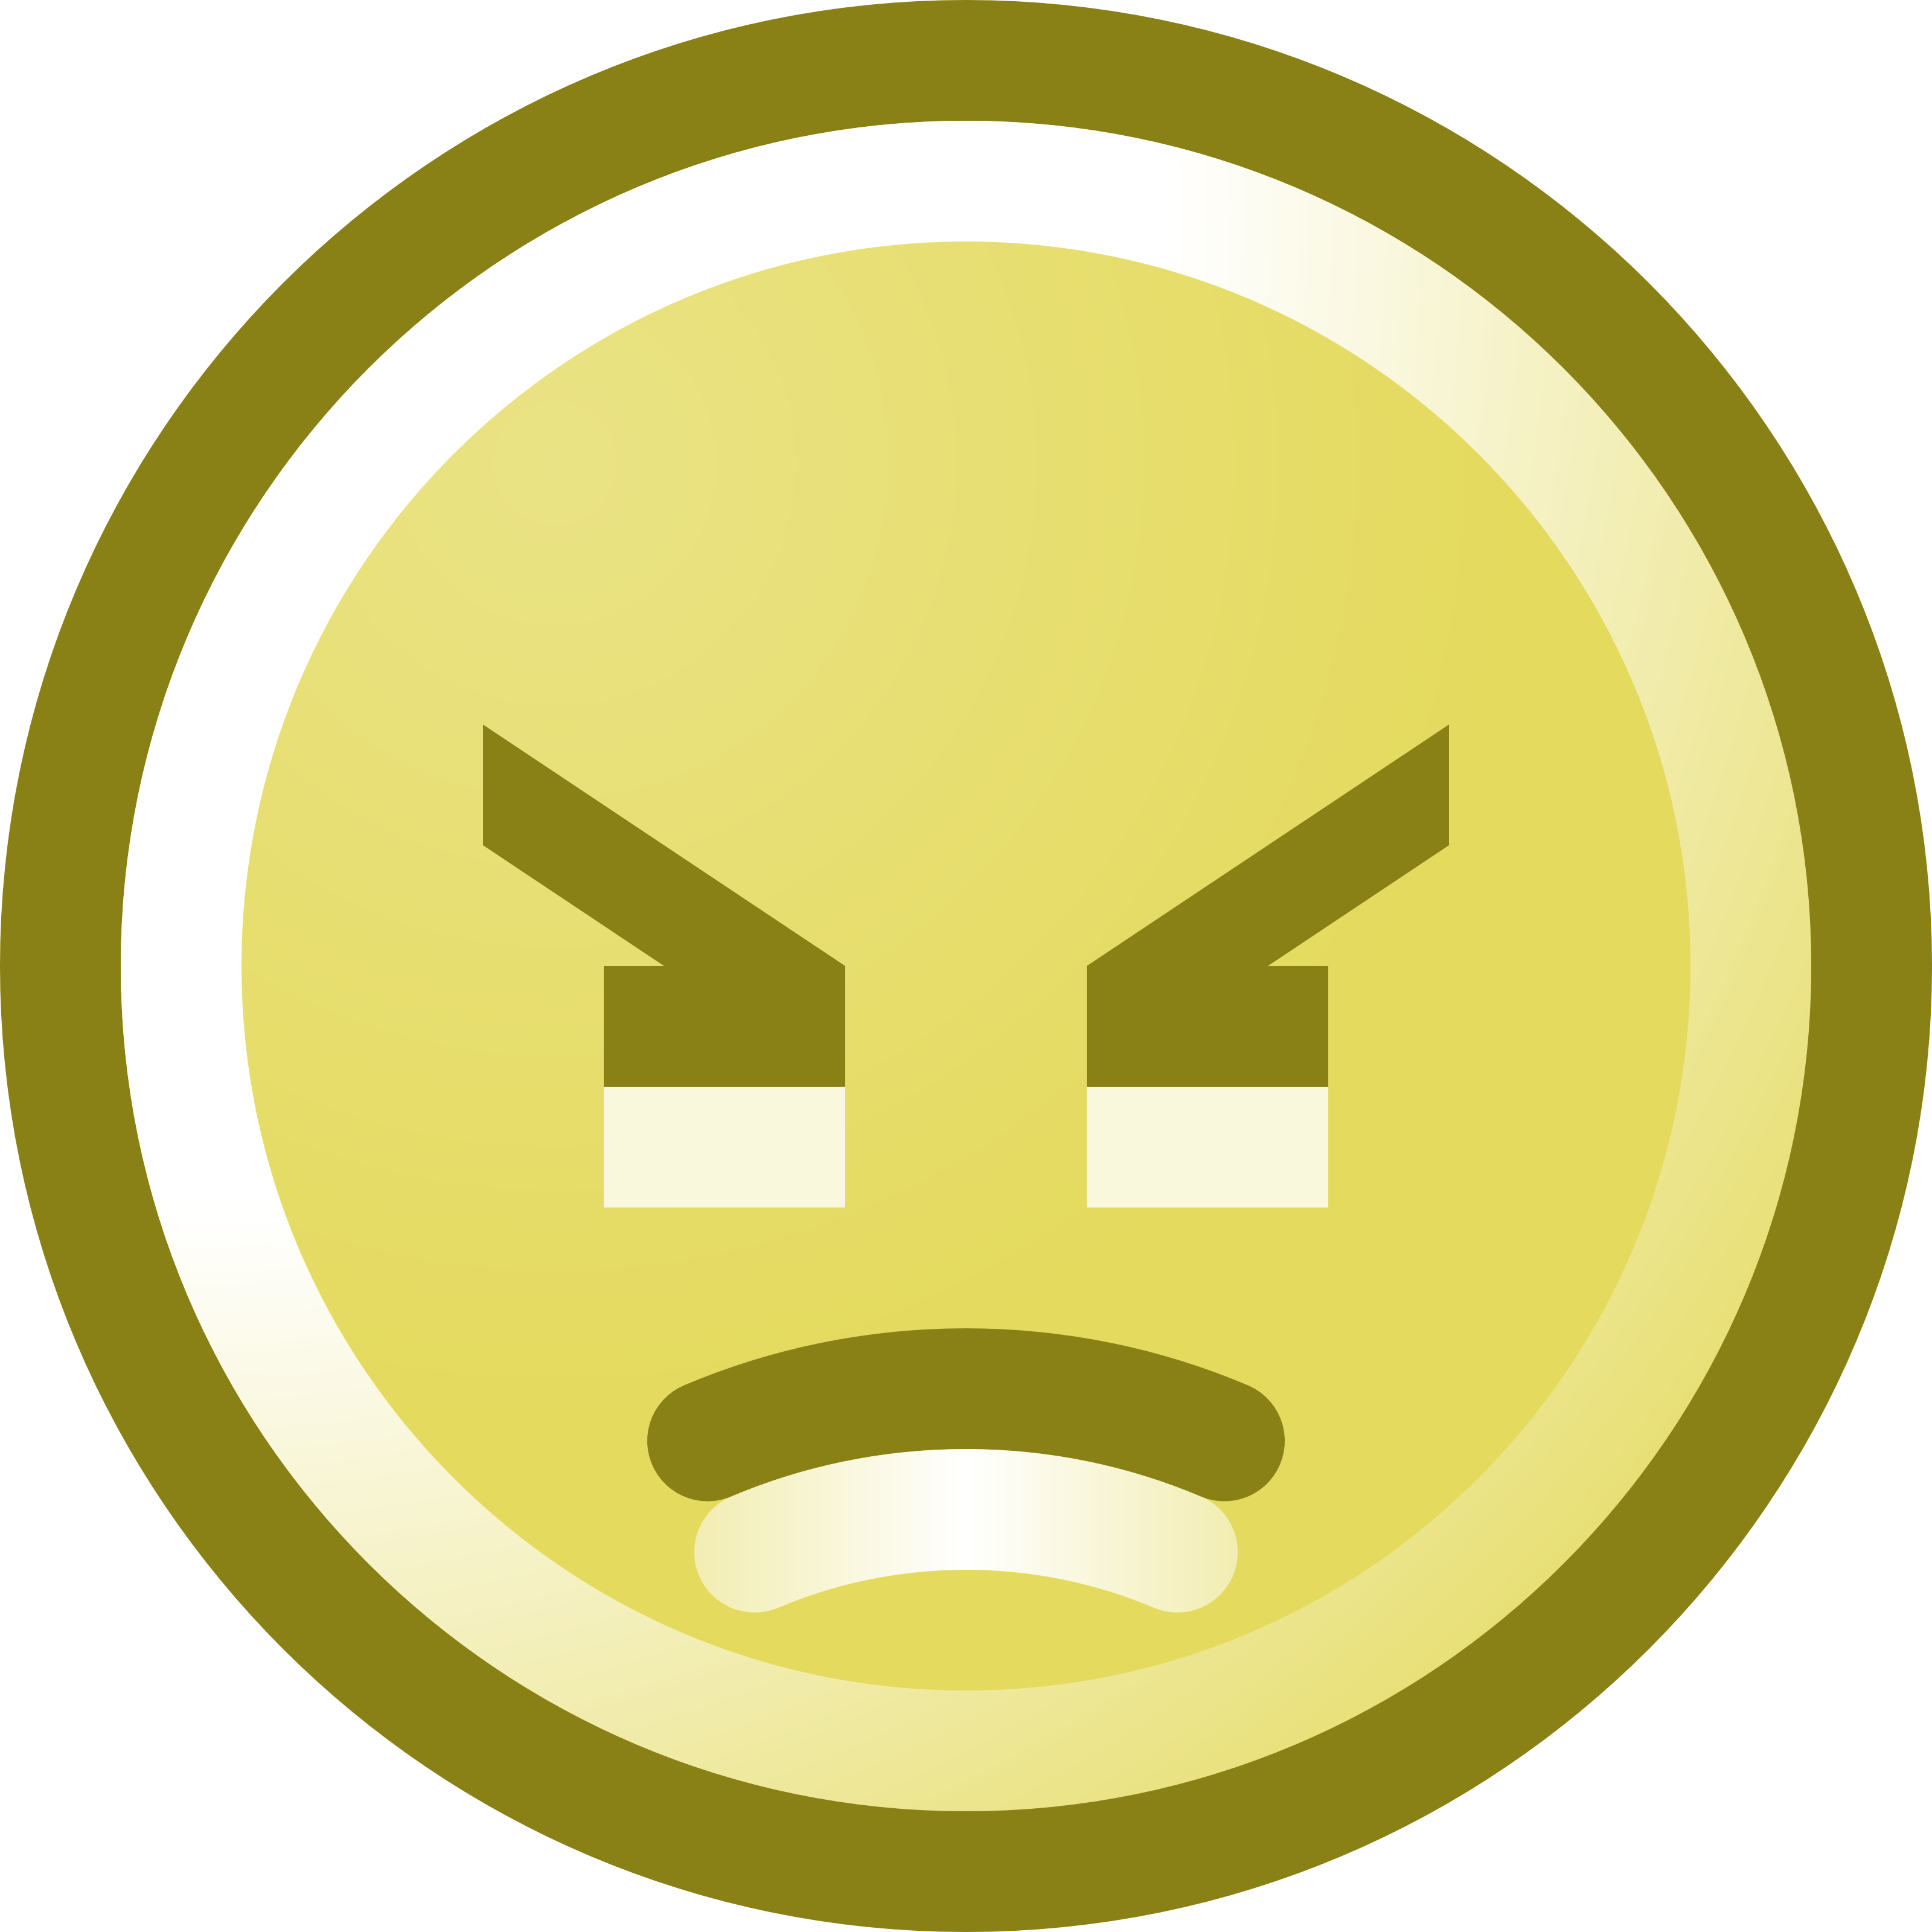 free angry smiley face clip art illustration rh free clipartof com